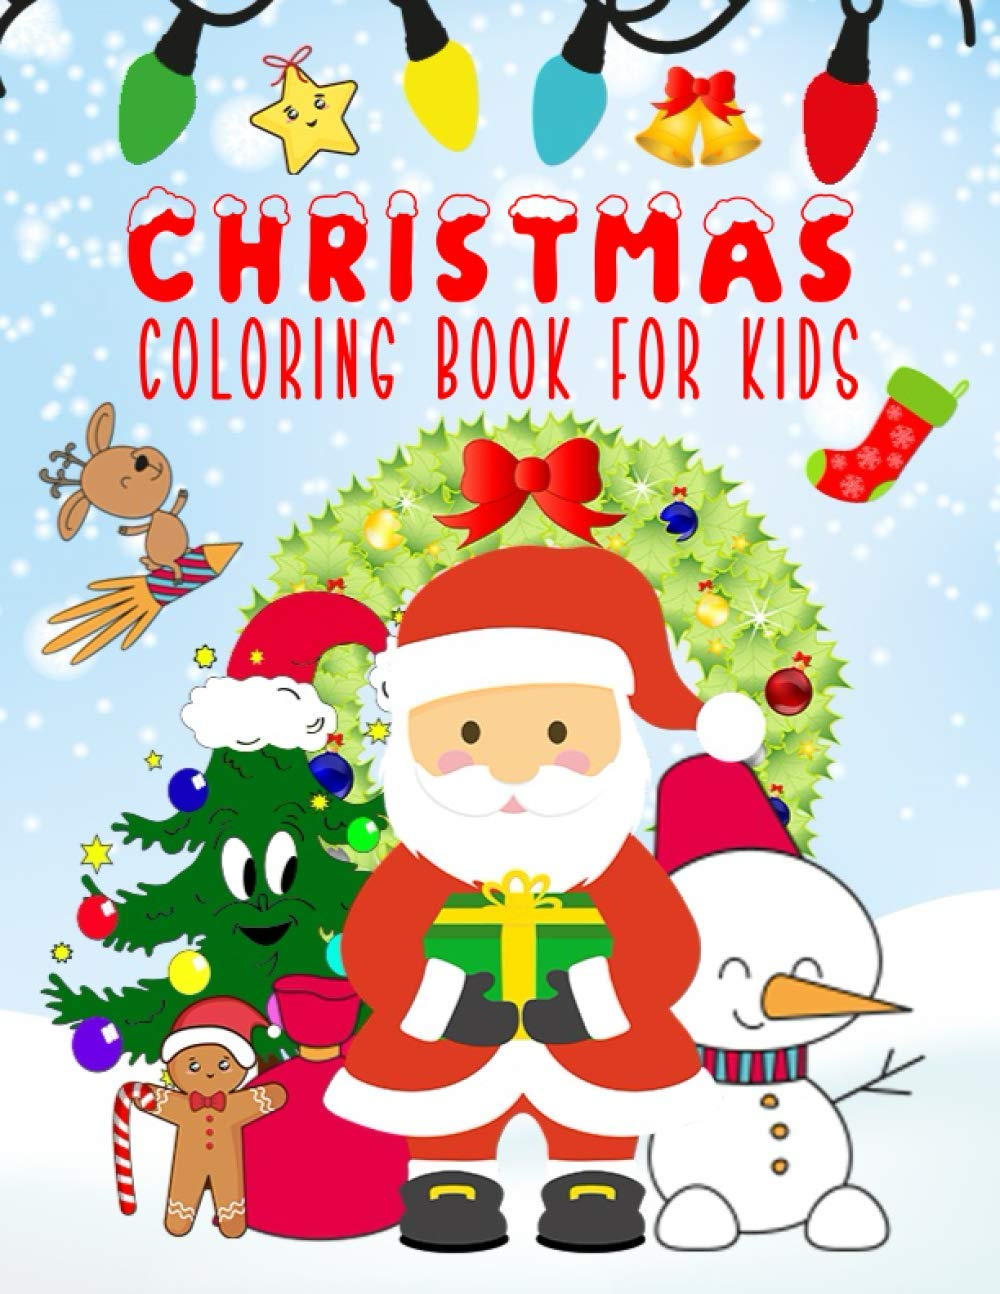 How Are Christmas Sales Doing Dec 2020 Christmas Coloring Book For Kids: Fun Children's Christmas Gift